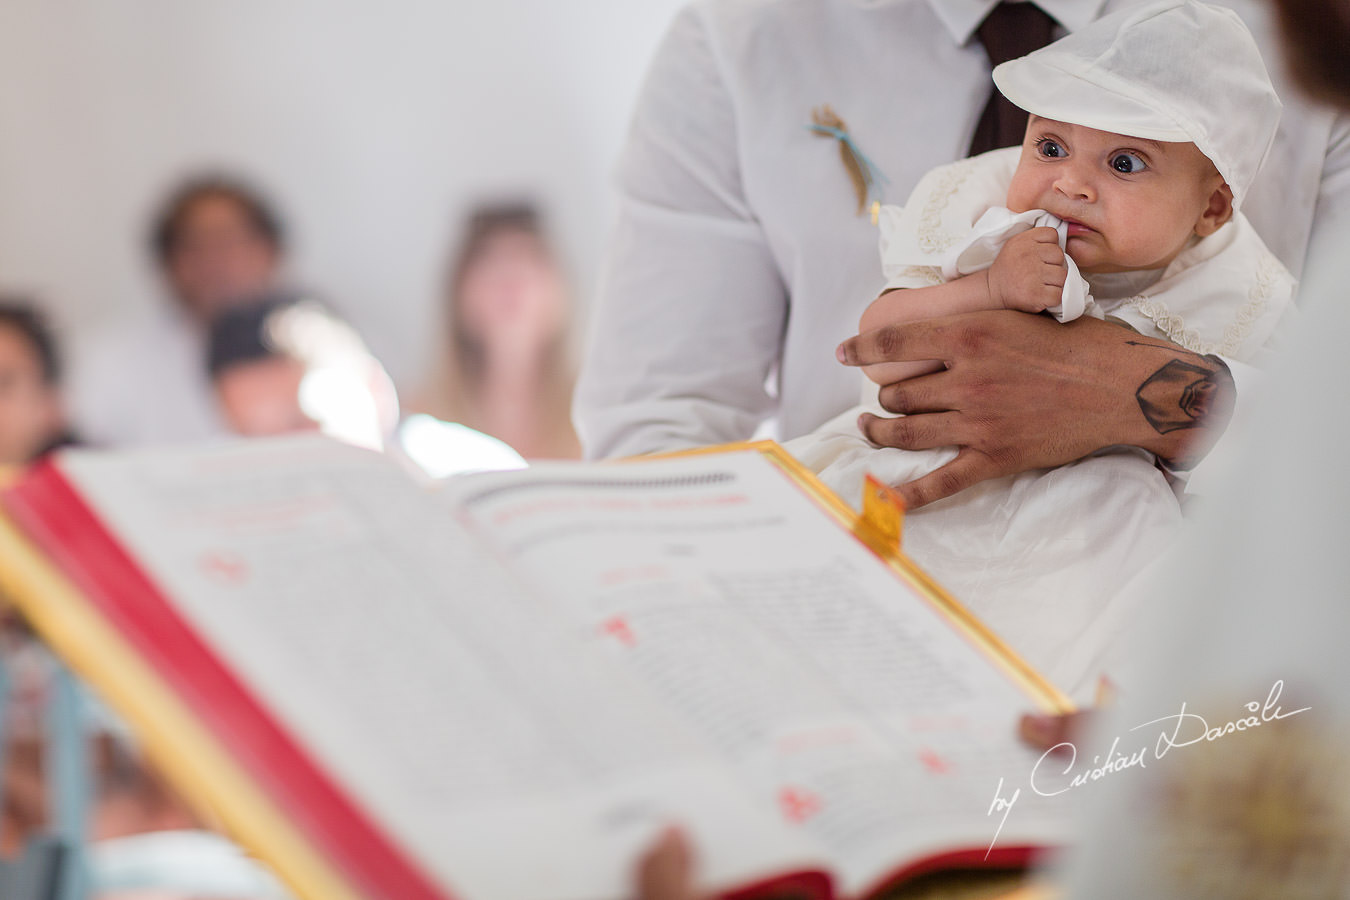 A Christening Ceremony at the beautiful Anassa Hotel photographed by Cyprus Photographer Cristian Dascalu.